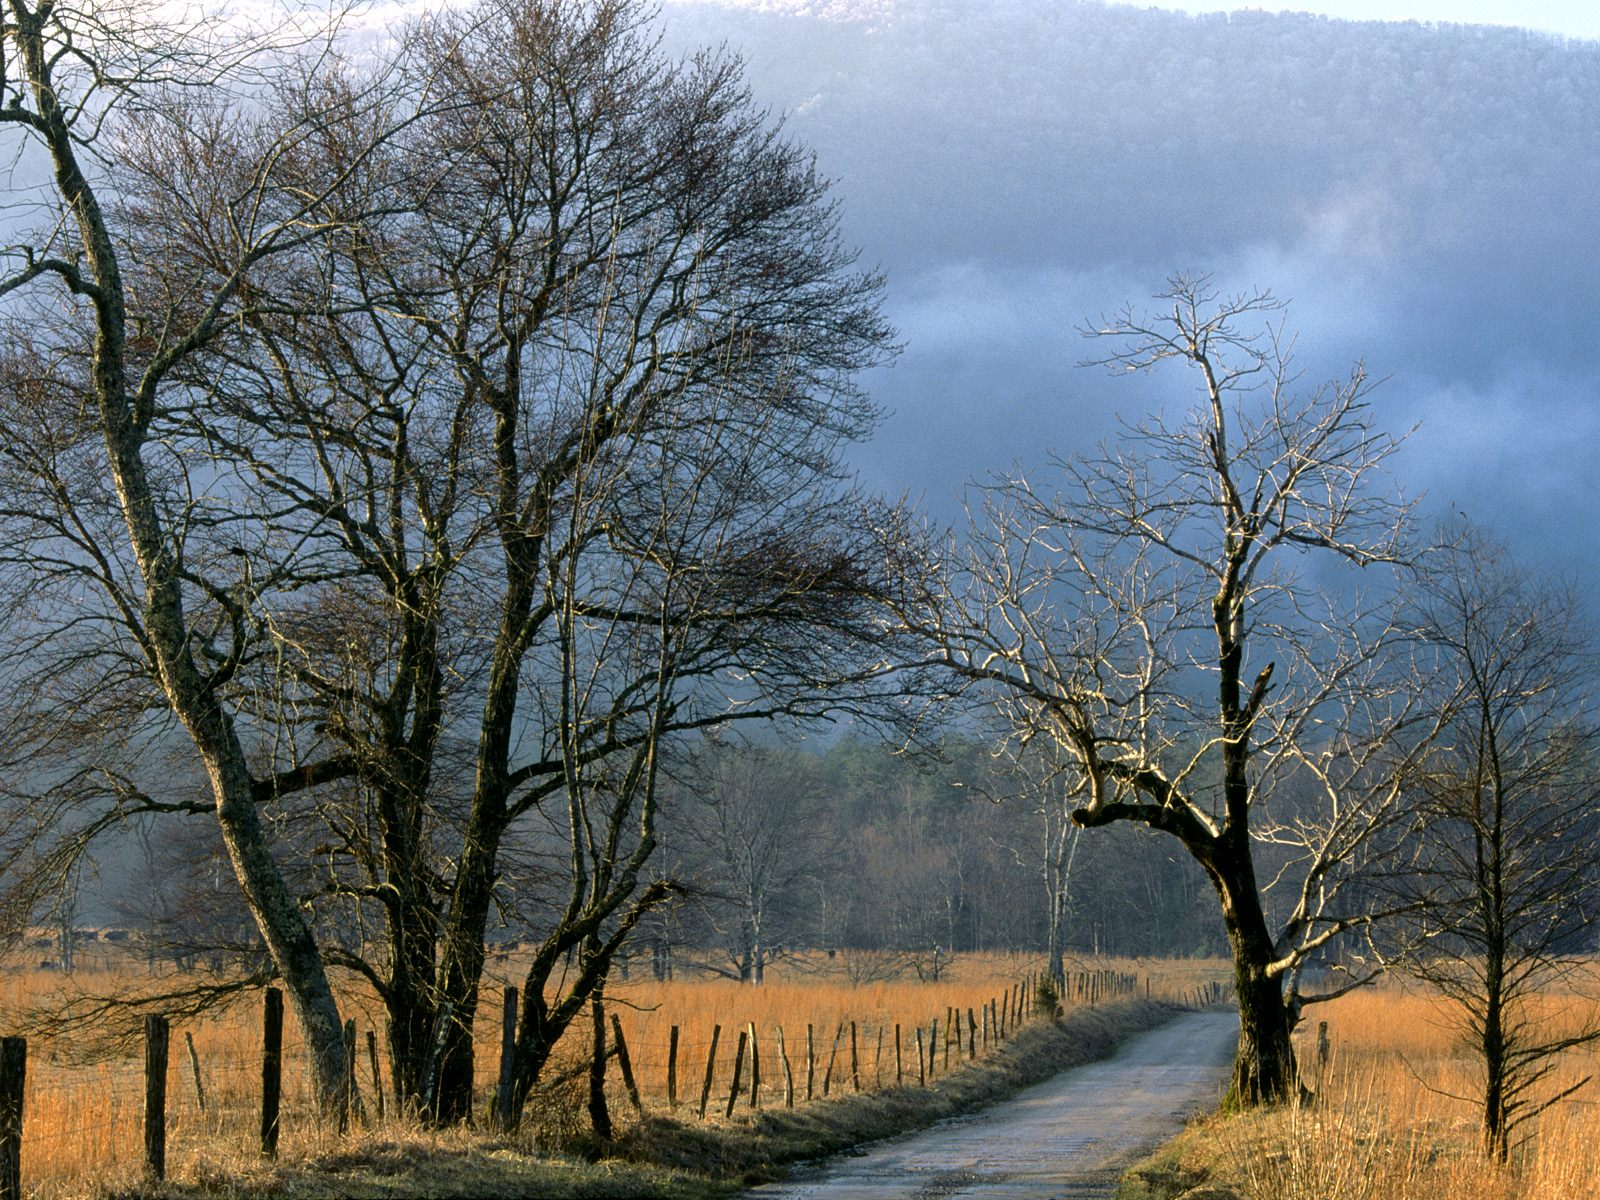 Sparks Lane, Cades Cove, Great Smoky Mountains N